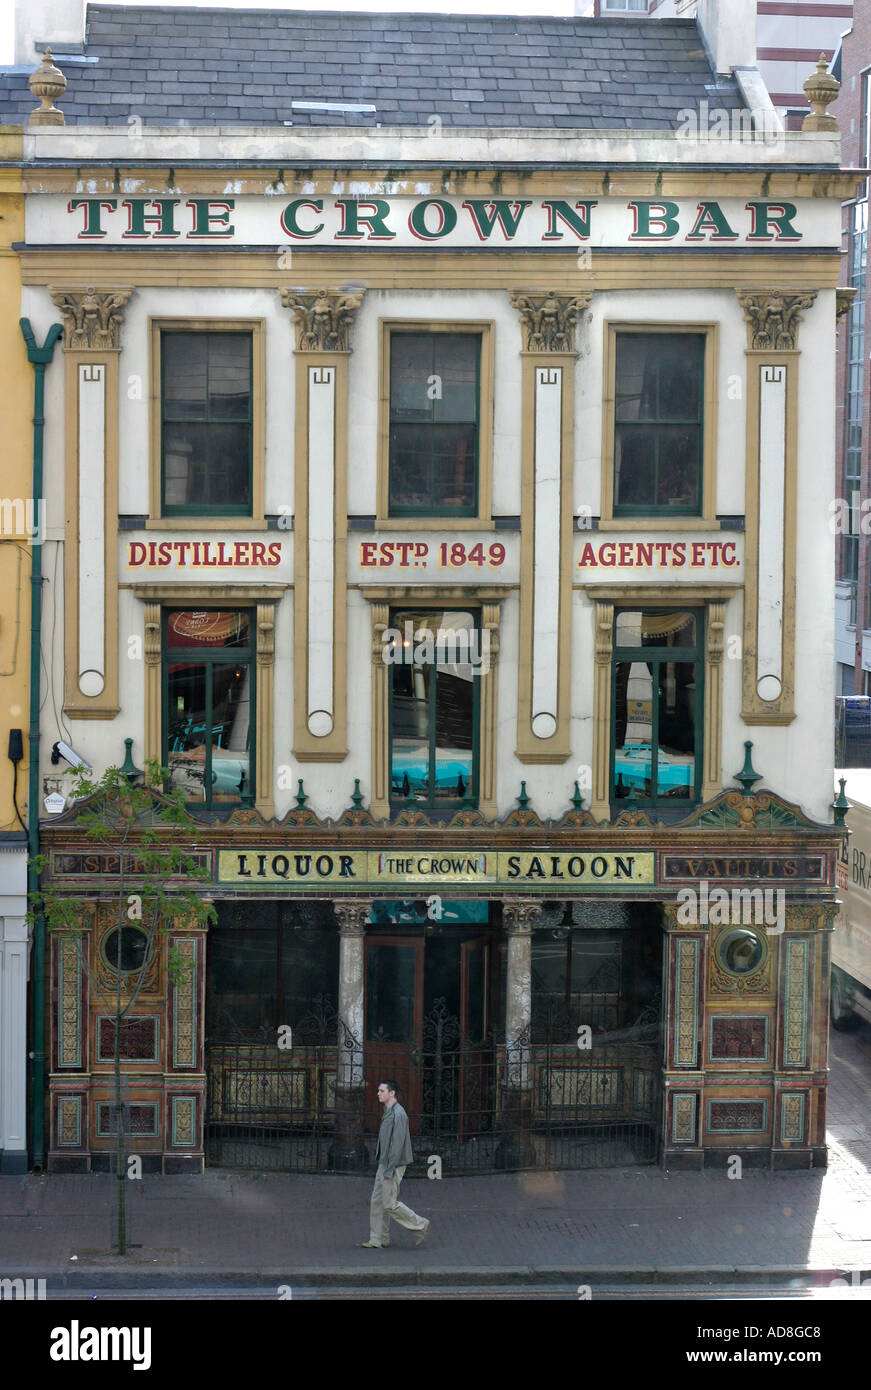 The front facade of the famous Belfast landmark of Crown Liquor Saloon Bar - Stock Image